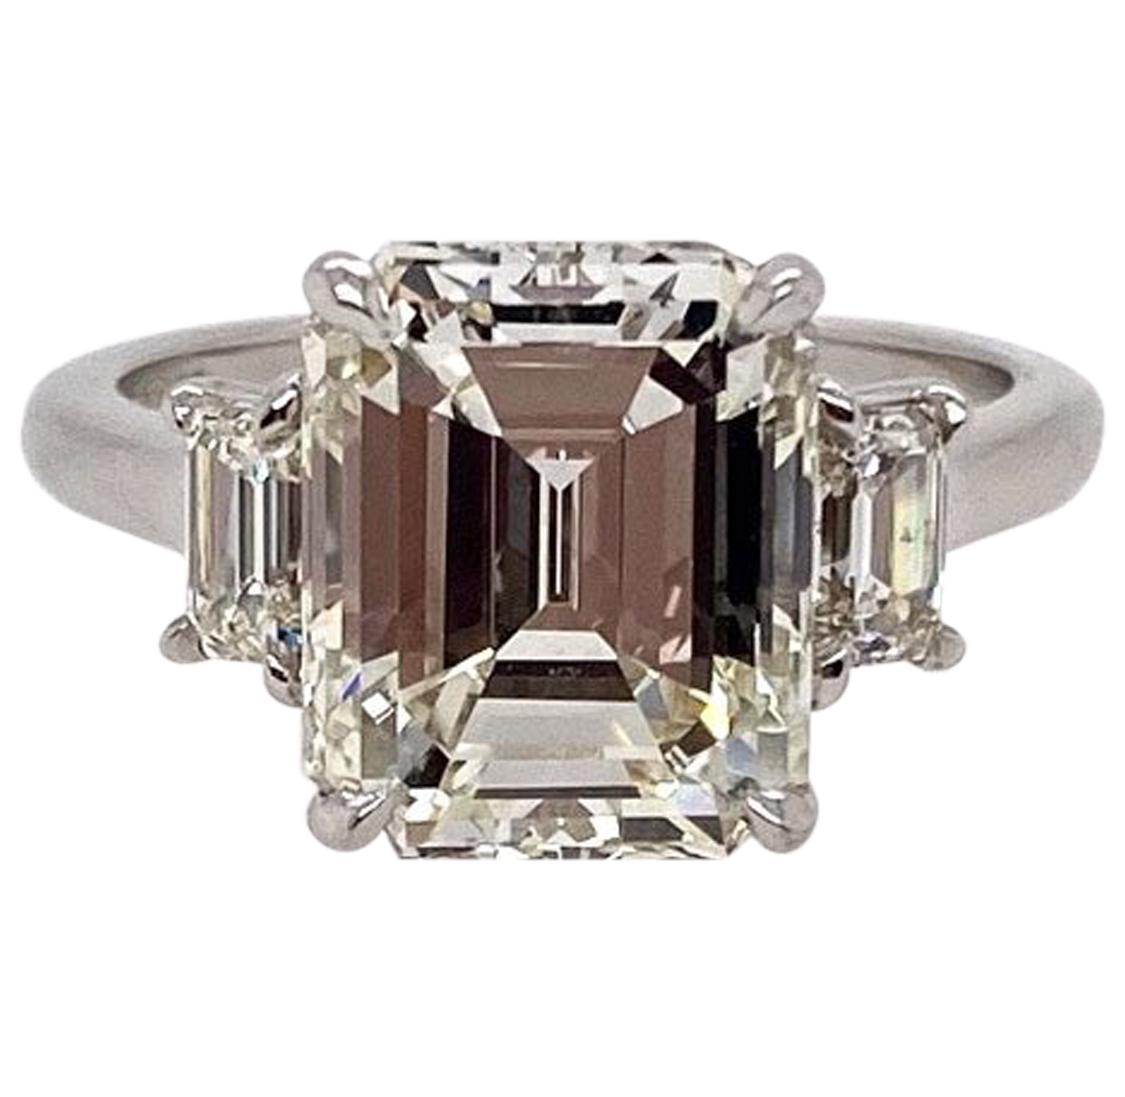 Ethonica GIA Certified Emerald Cut Diamond Three-Stone Ring in Platinum